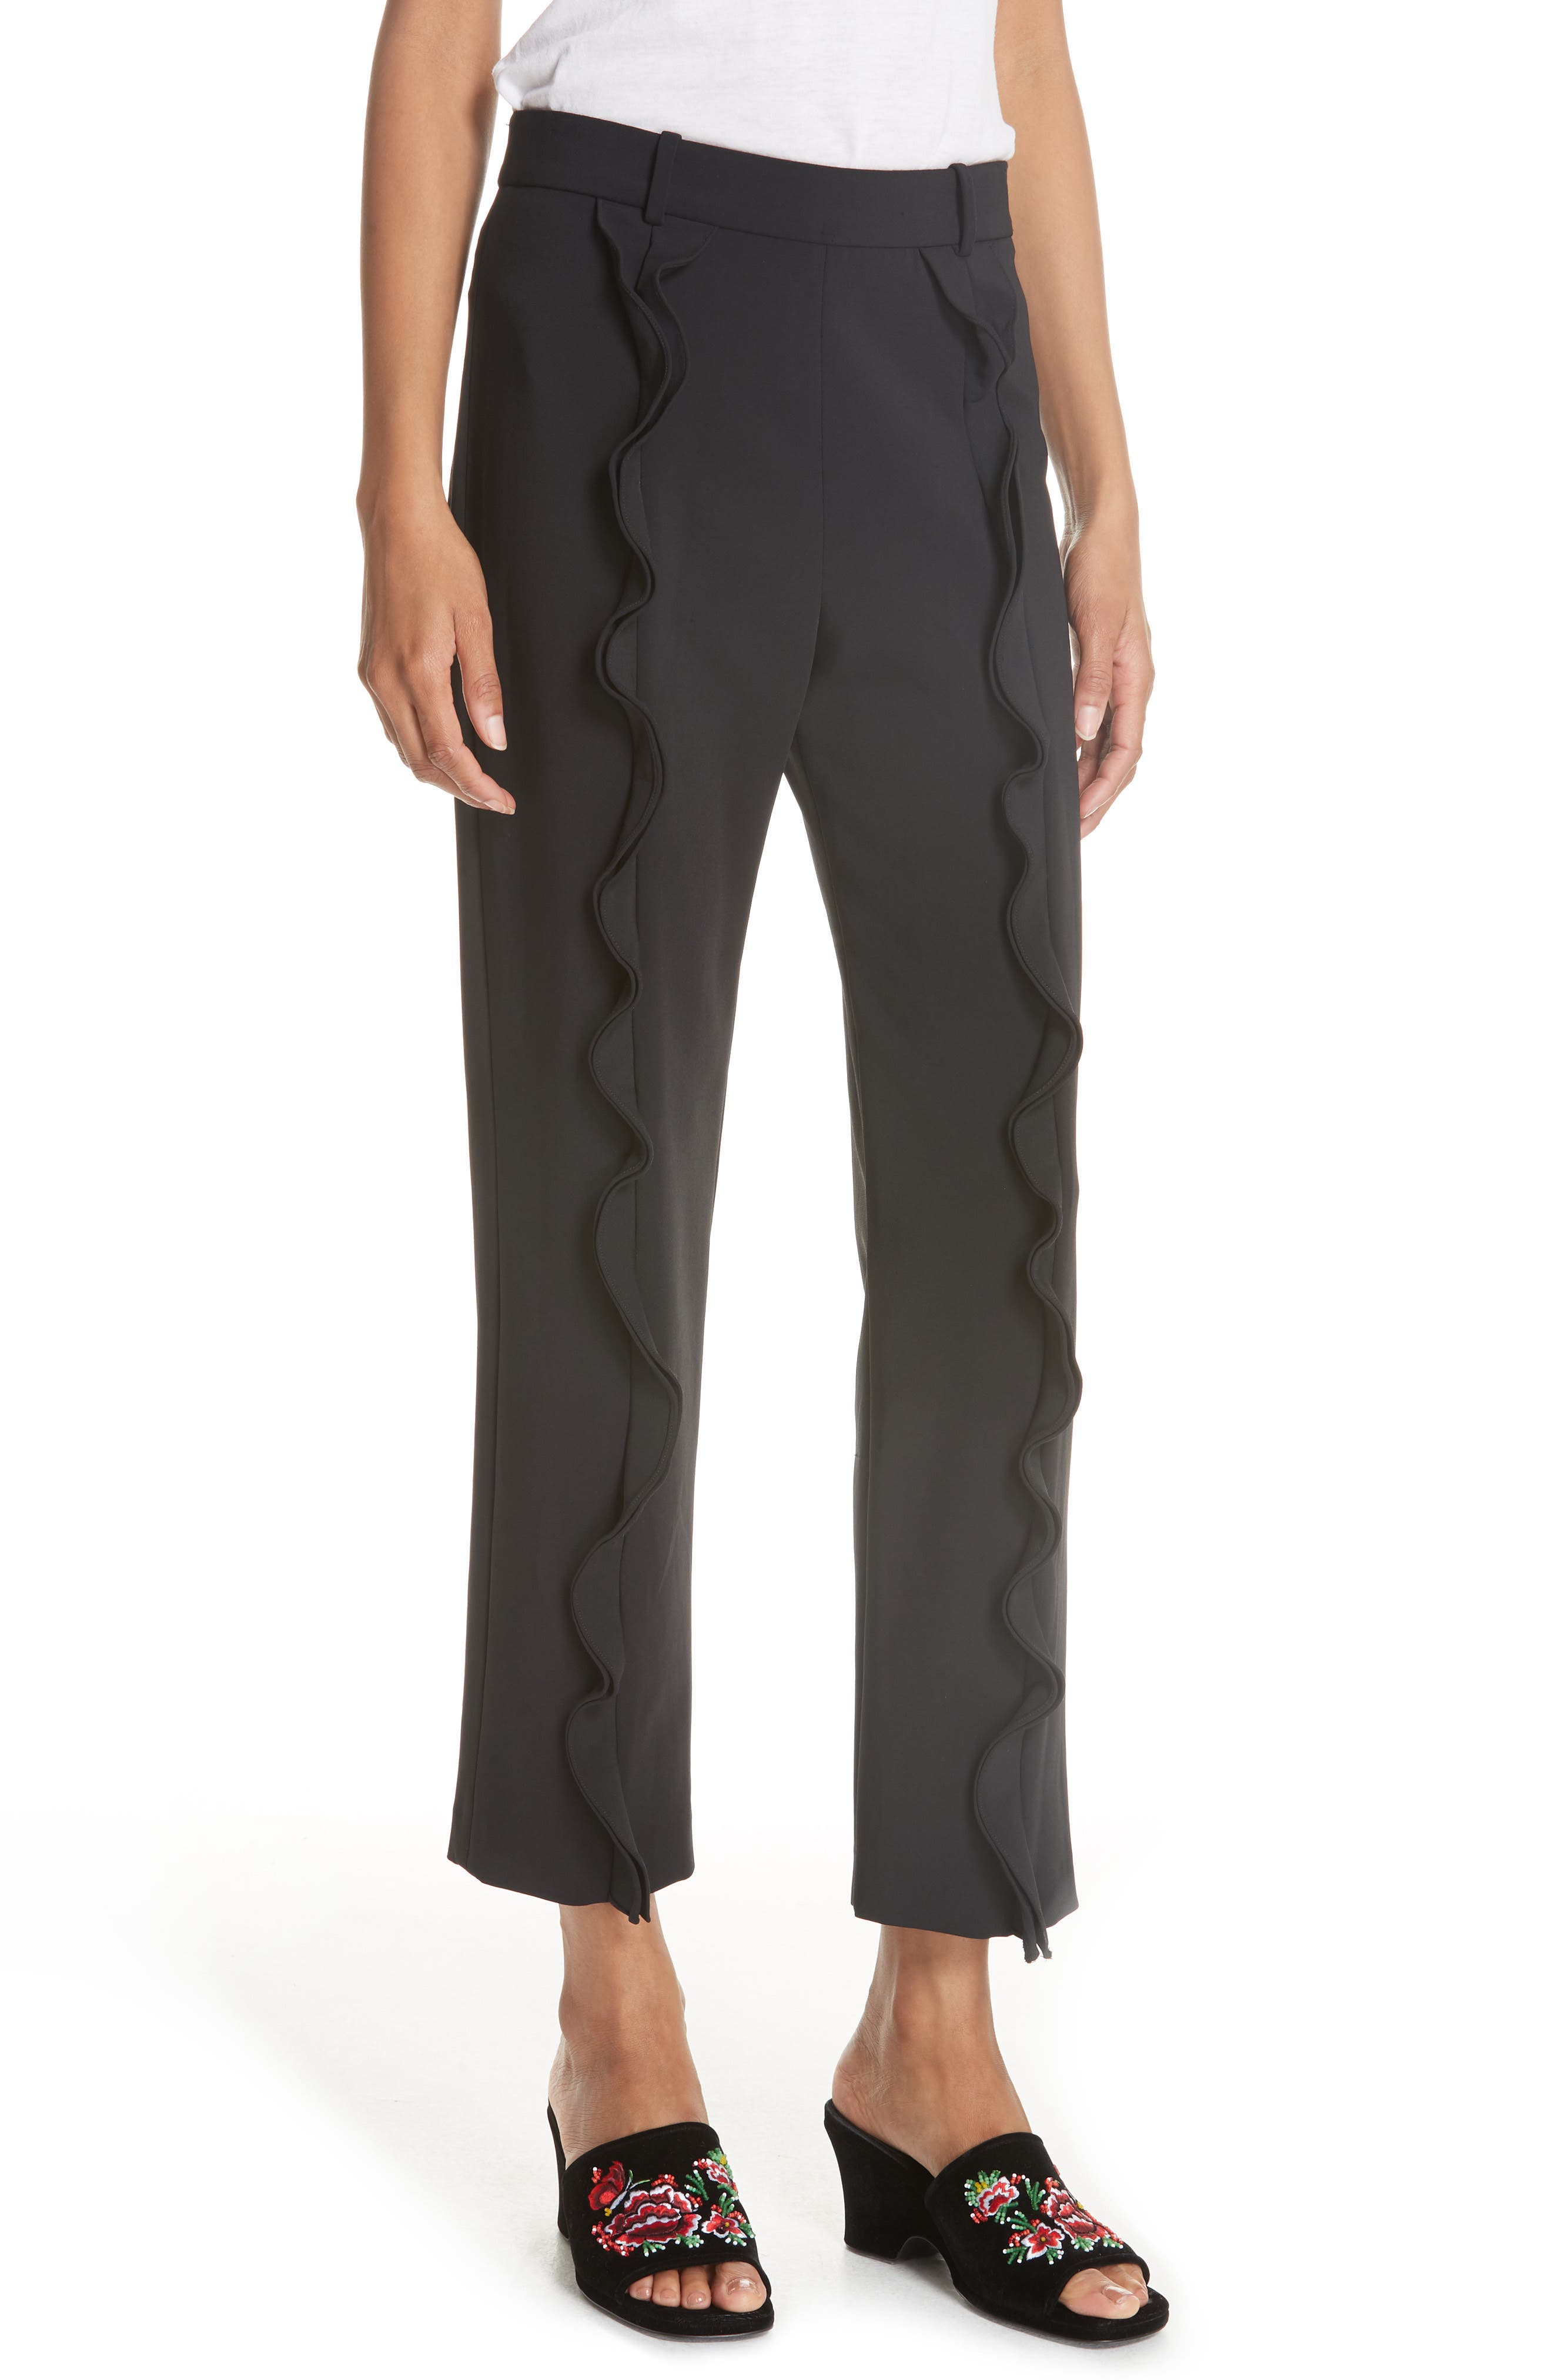 William Stretch Ruffle Pants in Black